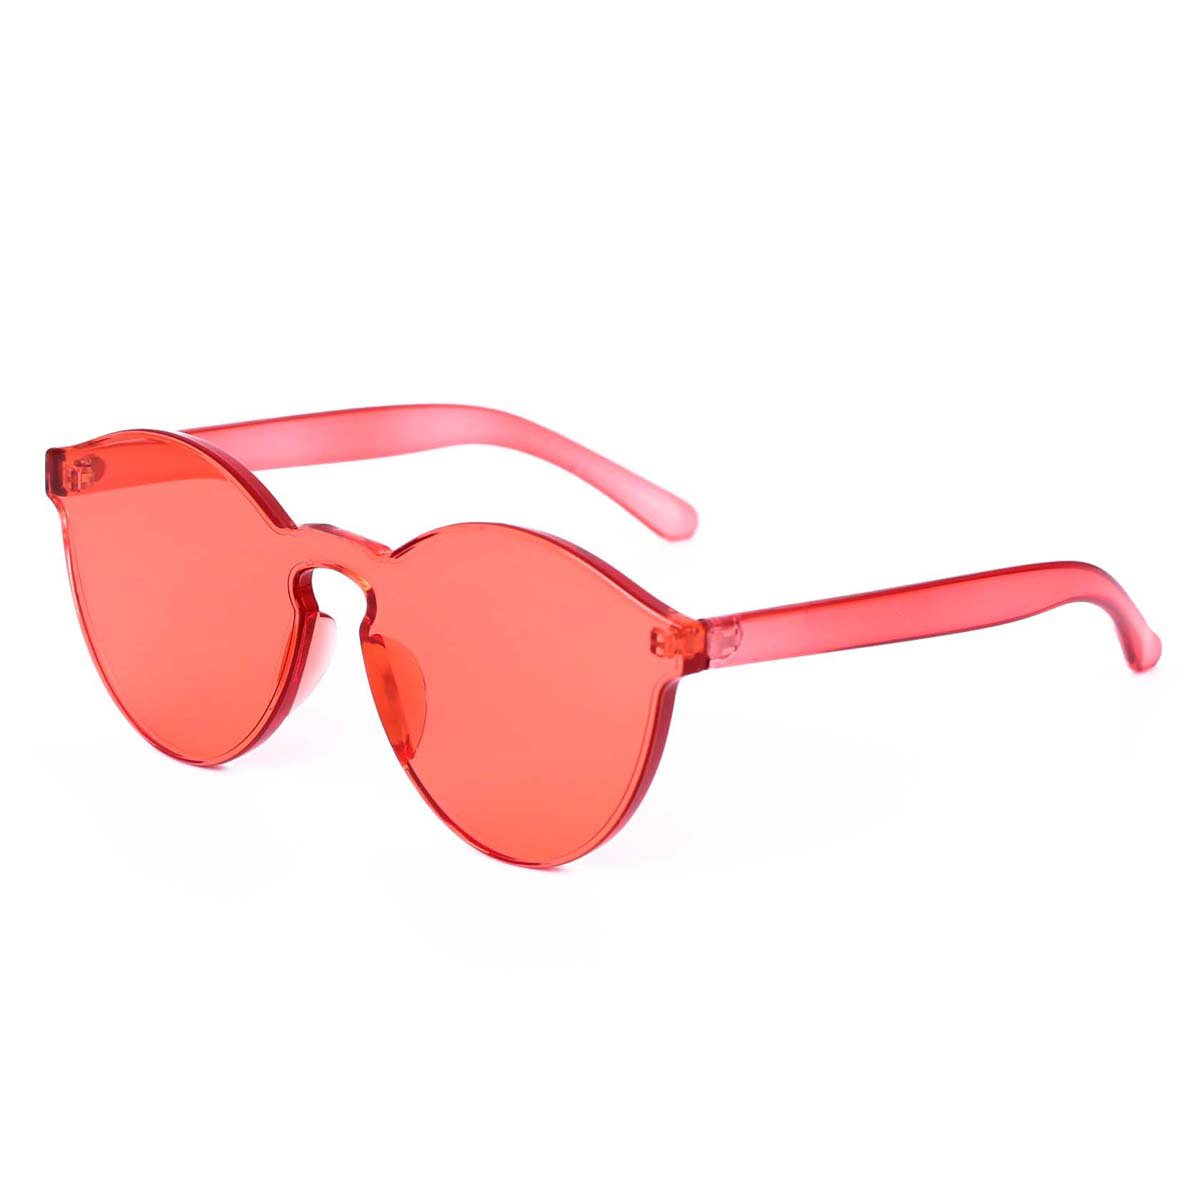 WISH CLUB Cat Eye Rimless Sunglasses for Women Oversized Lightweight Transparent Glasses Candy Color Eyewear (Red)